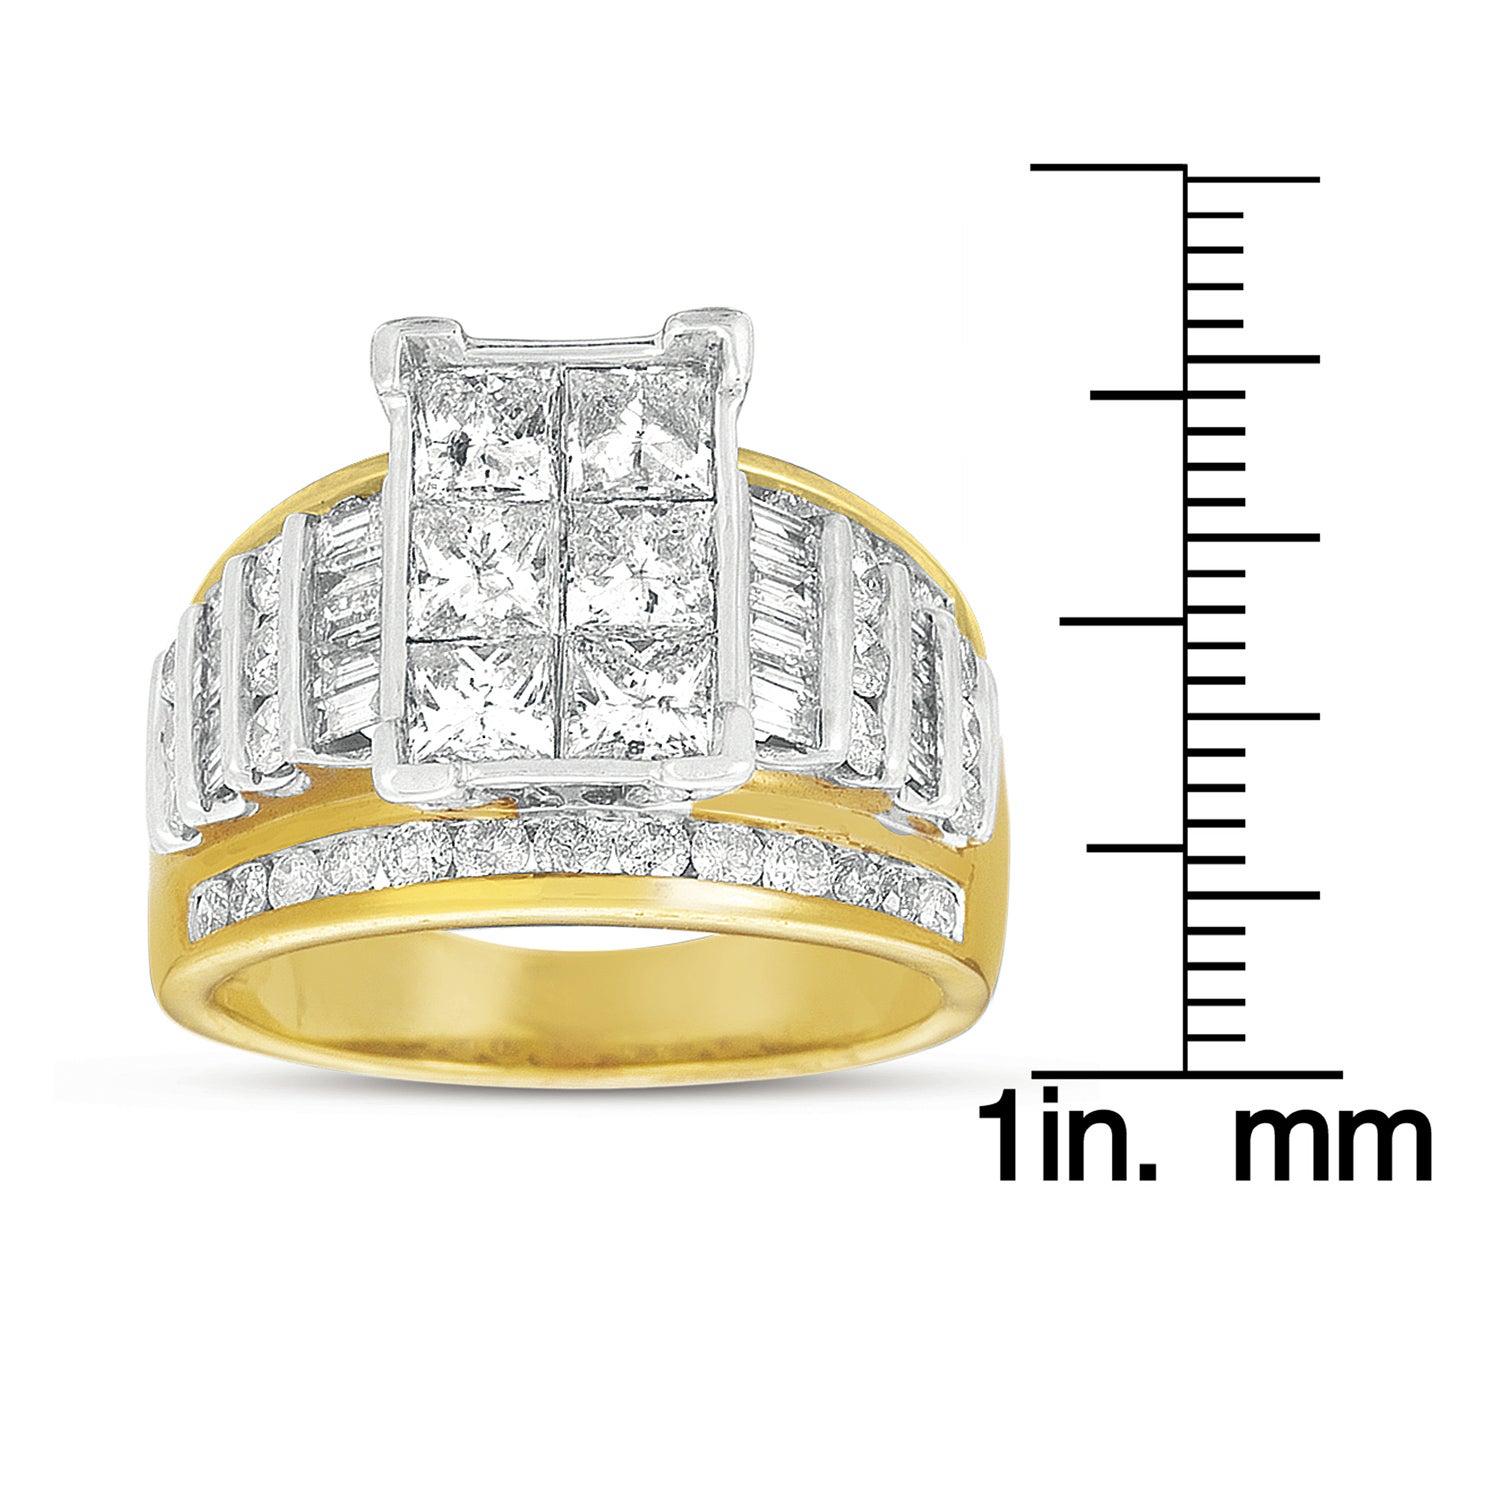 Eloquence 14k Gold 3ct TDW Princess Cut Pave Diamond Ring (G-H, I1)